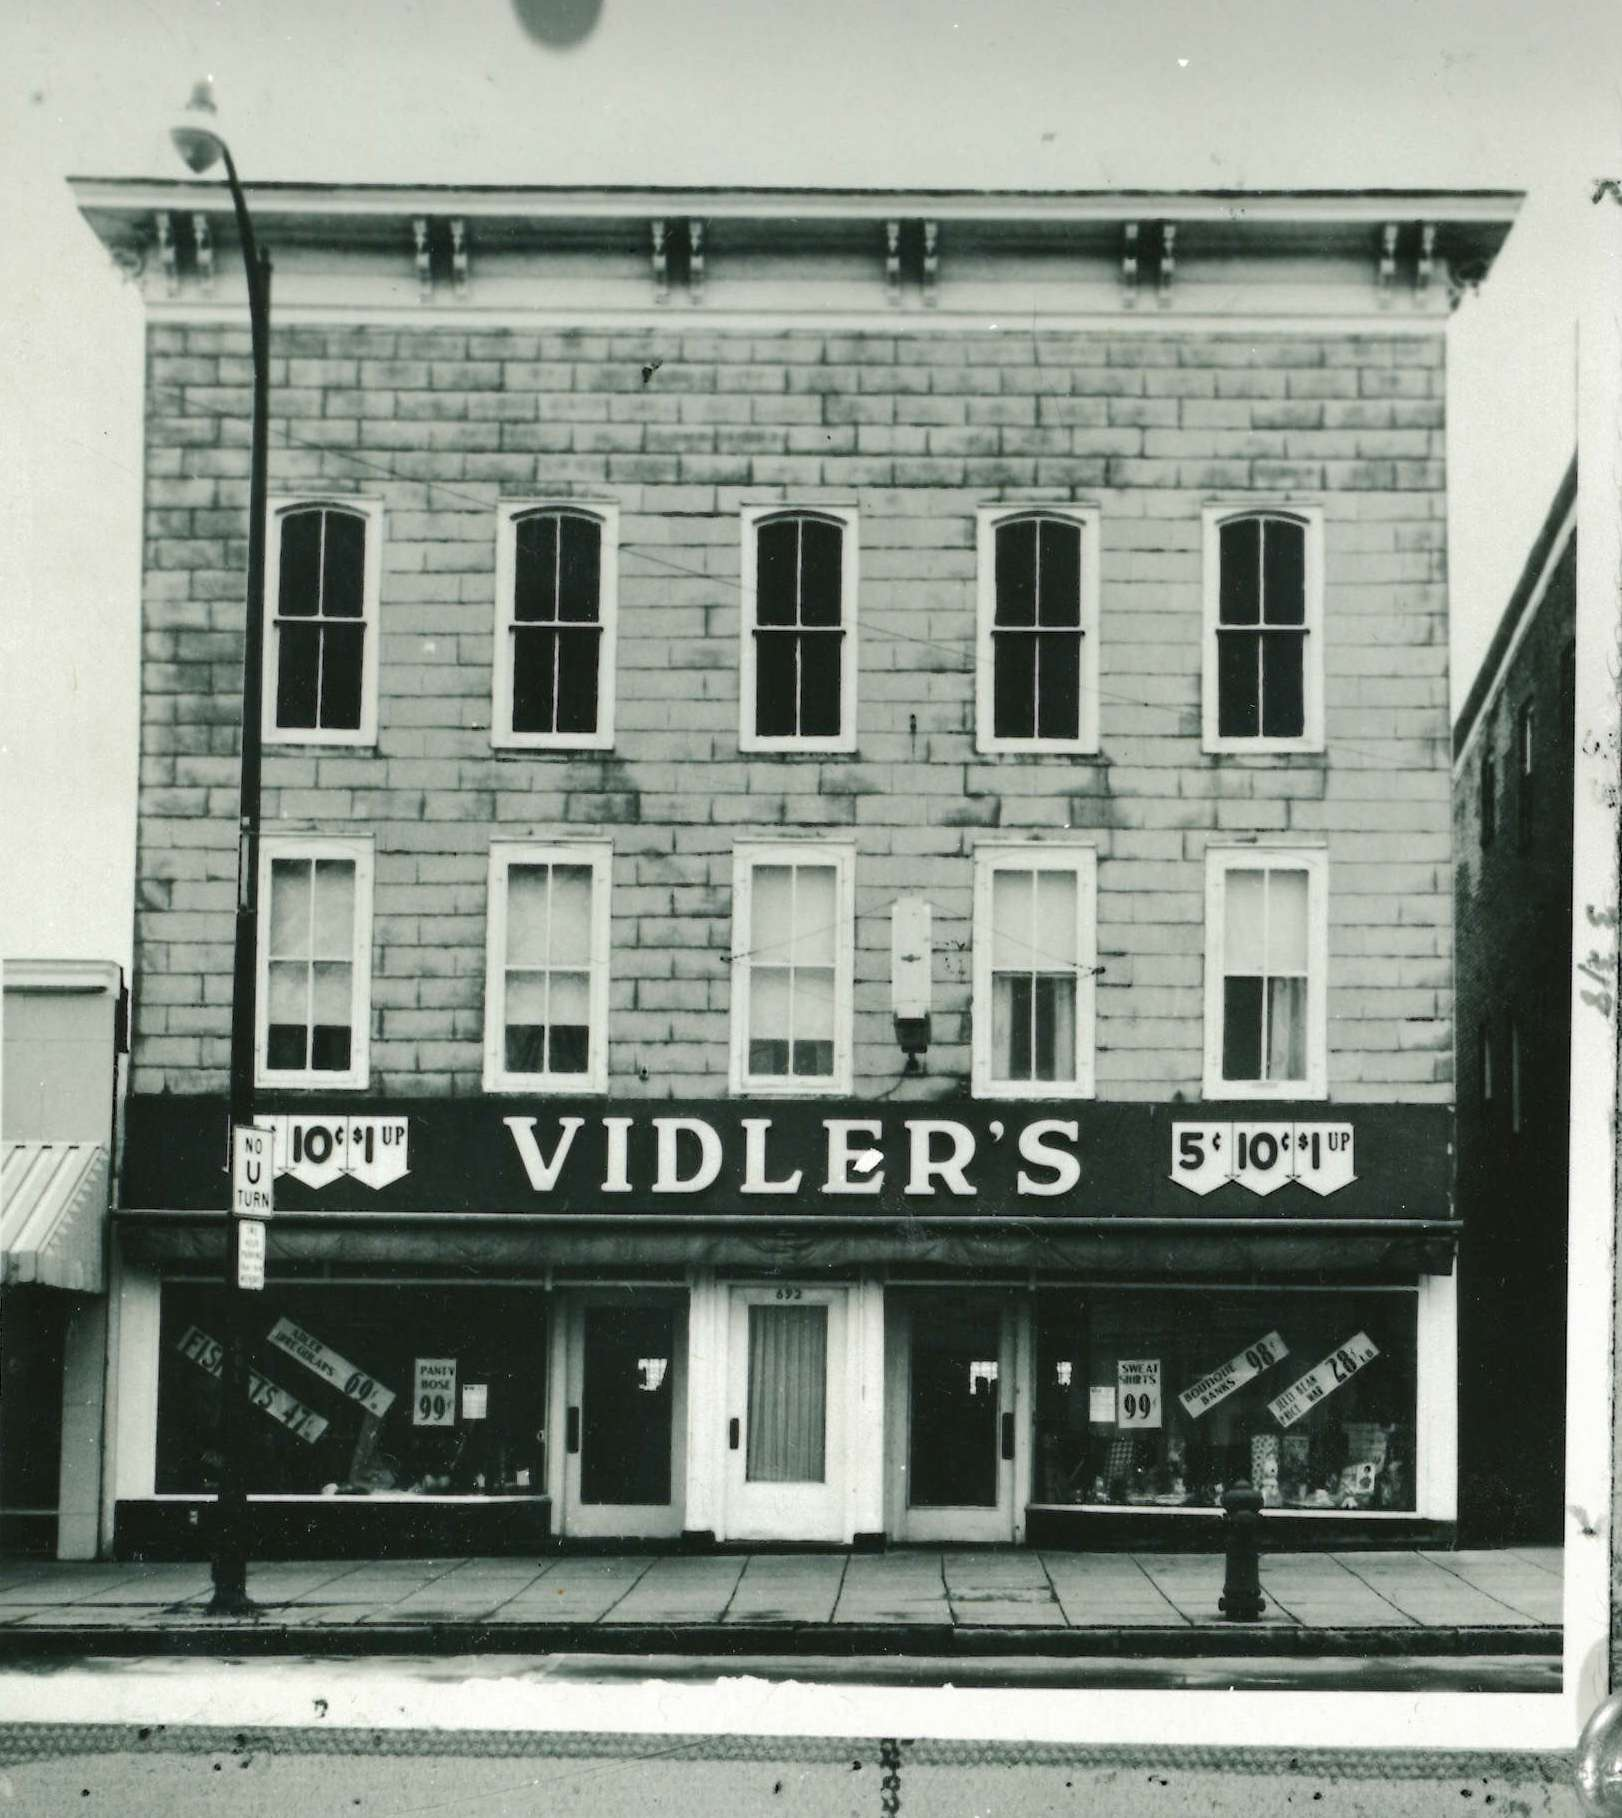 vidlers storefont early 60s